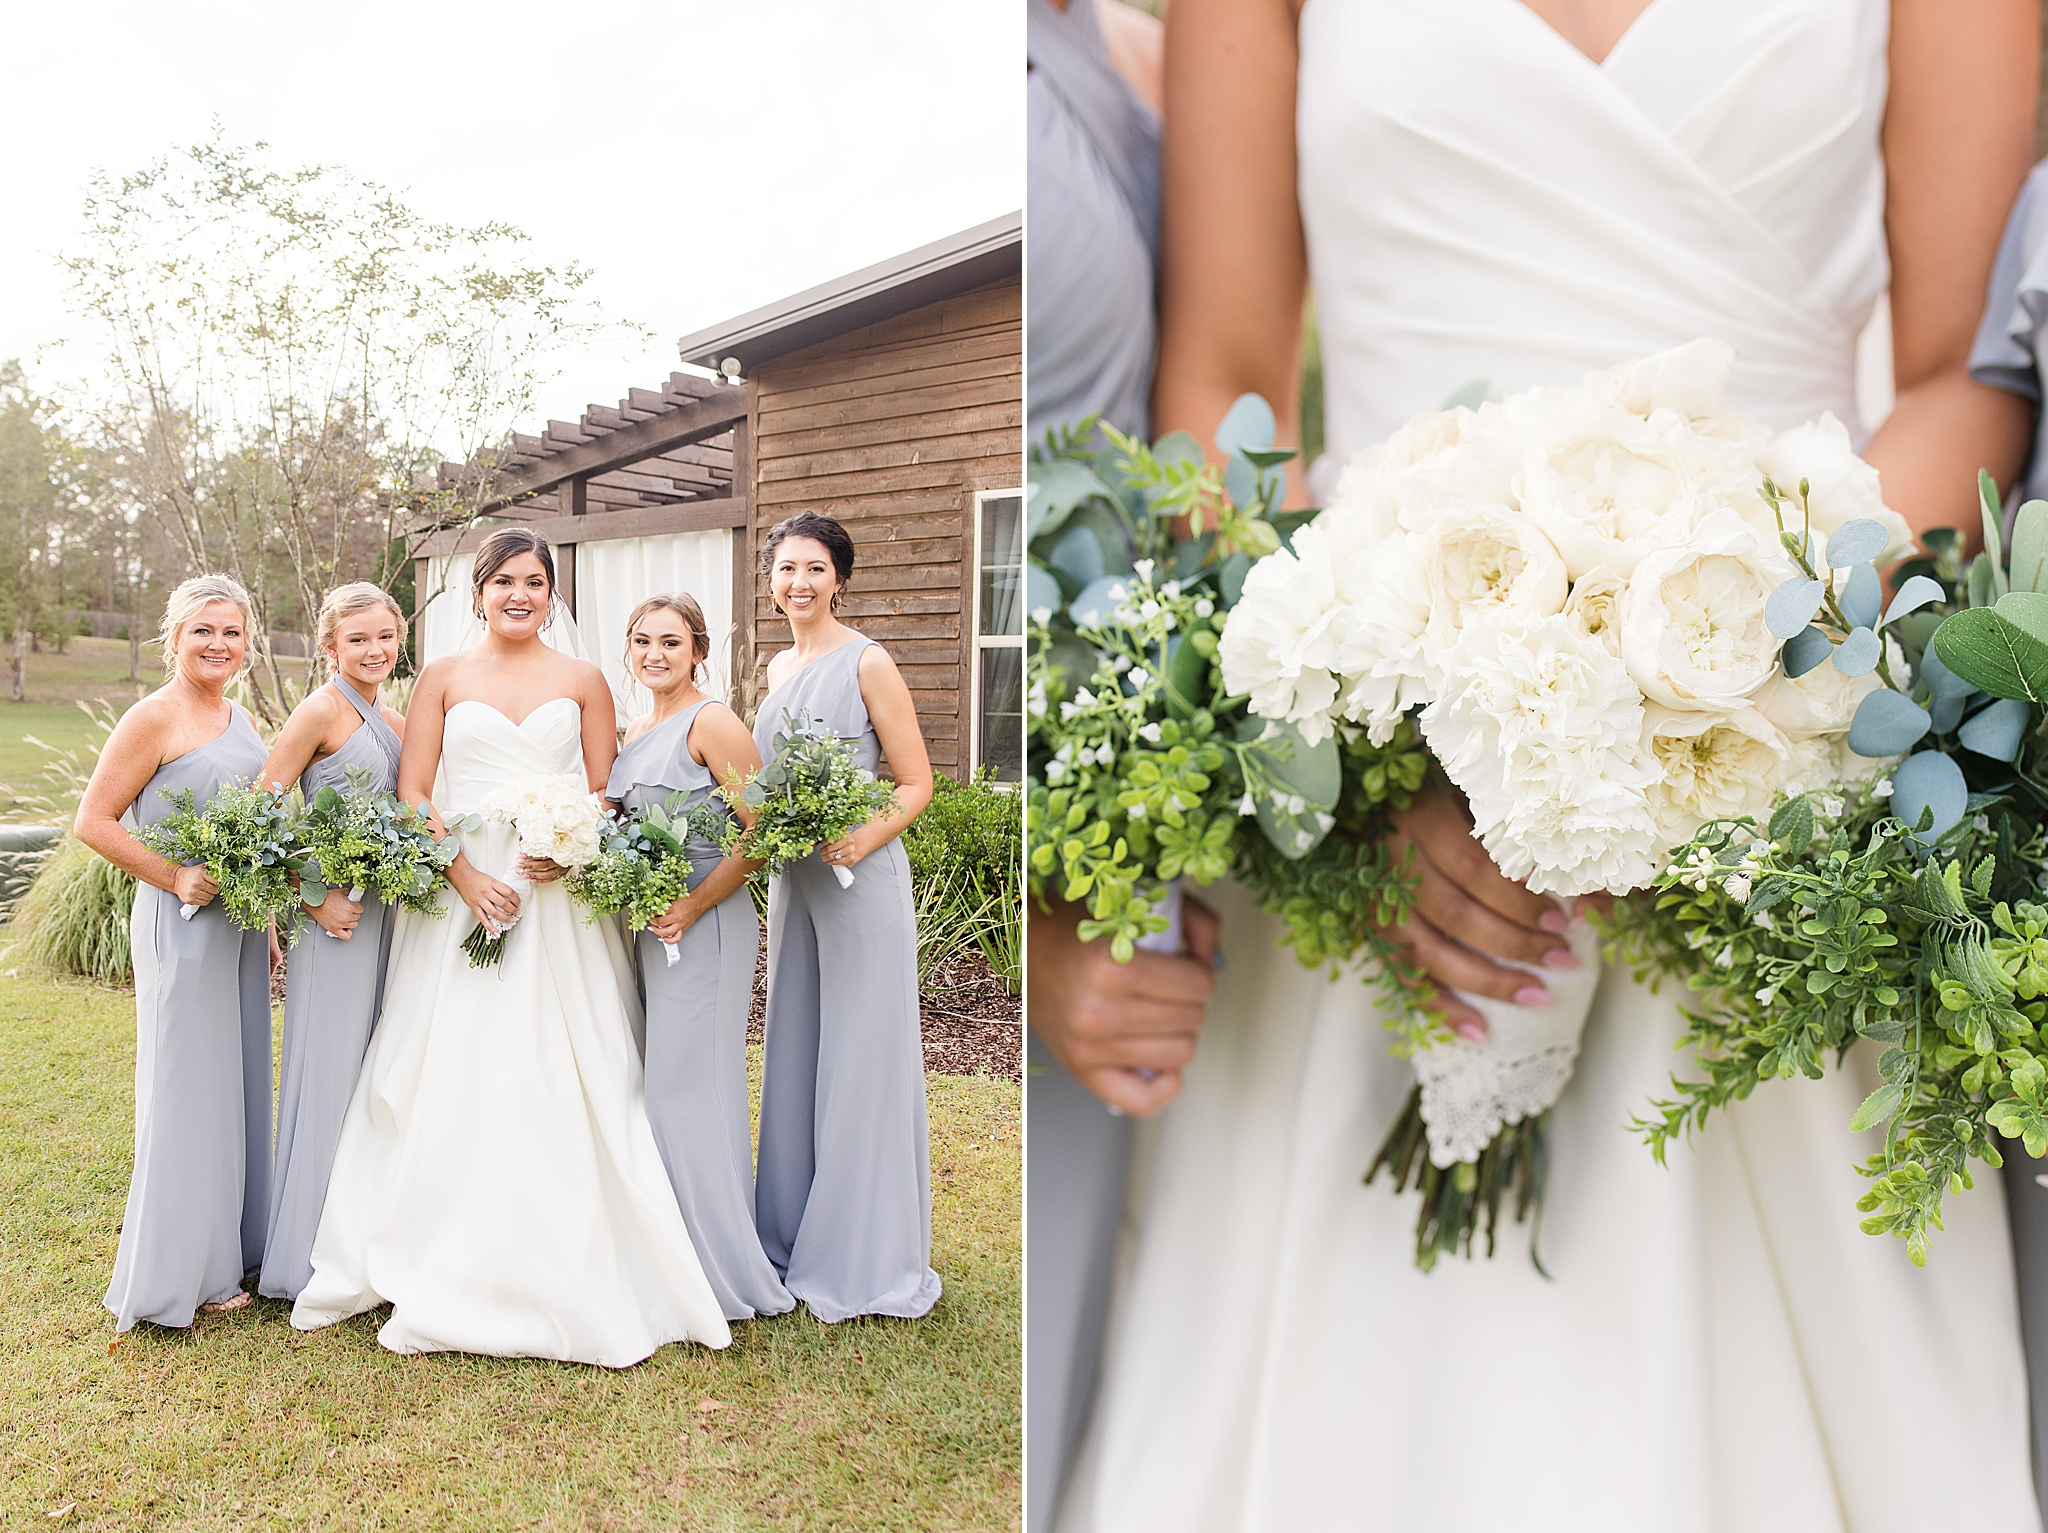 bride poses with bridesmaids before fall Izenstone wedding